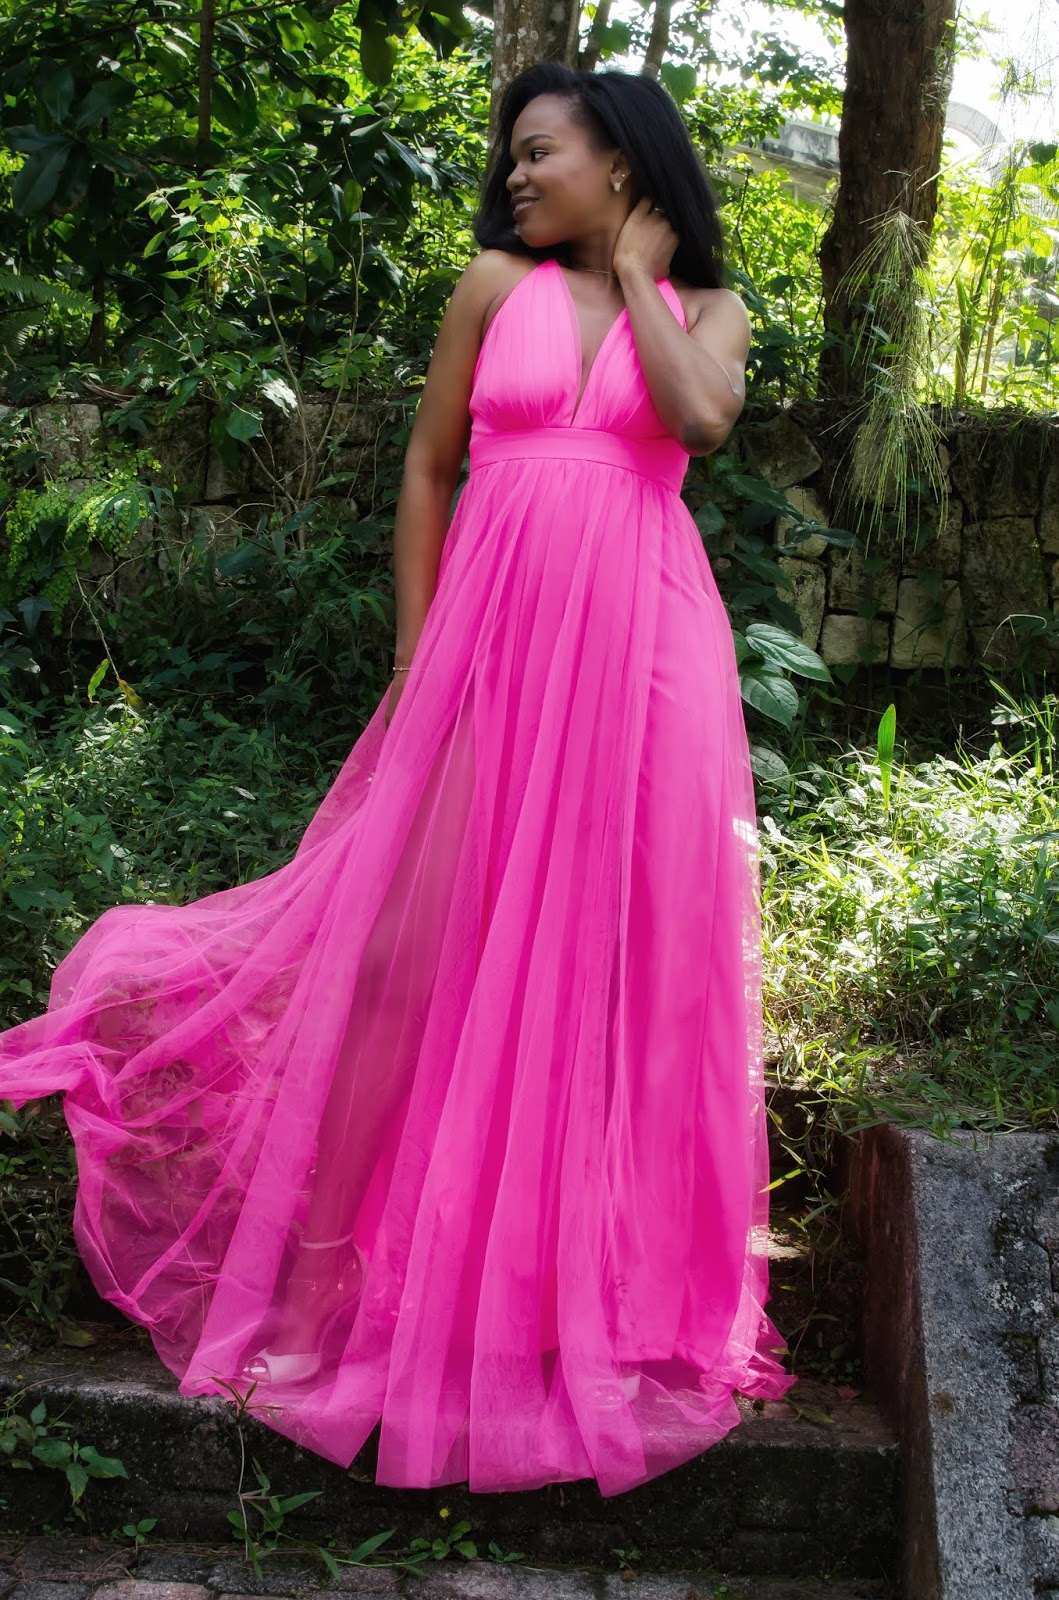 Iris from blog LaMousMous in a fabulous hot pink gown